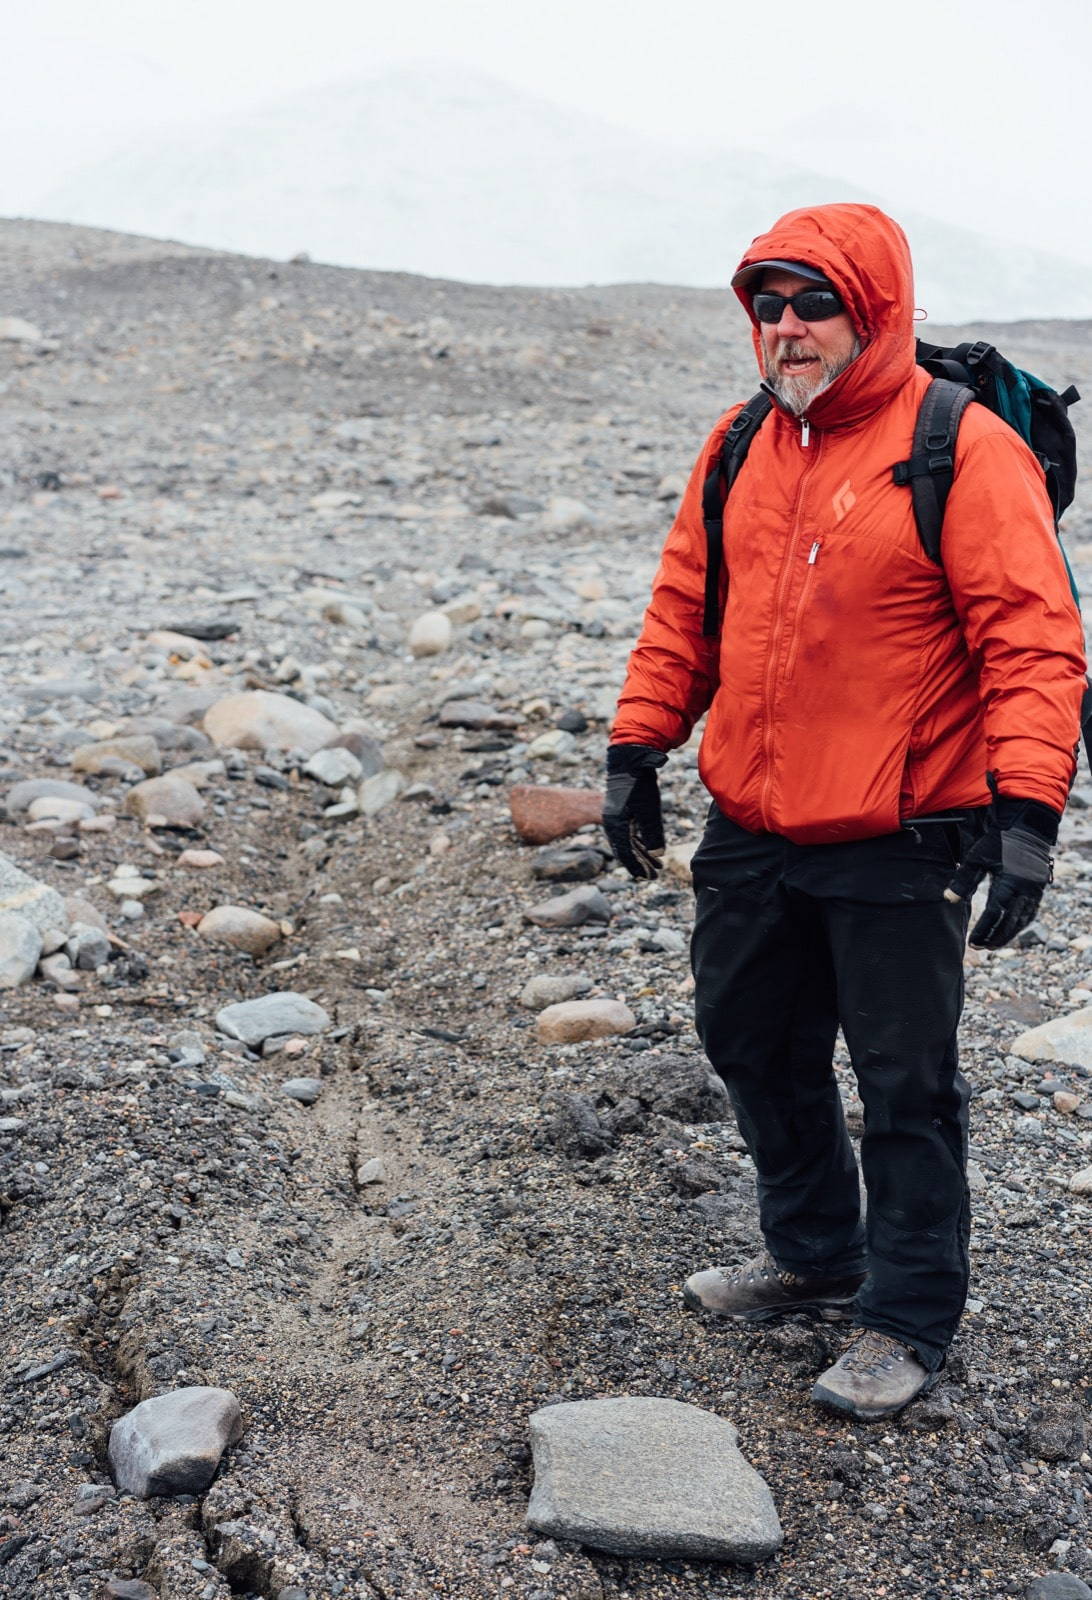 Mike Gooseff's quick pace can be difficult to keep up with as he hikes between field sites. Gooseff is the lead principal investigator for the McMurdo Dry Valleys Long-Term Ecological Research (LTER) Project. Photo by Ariel Zych